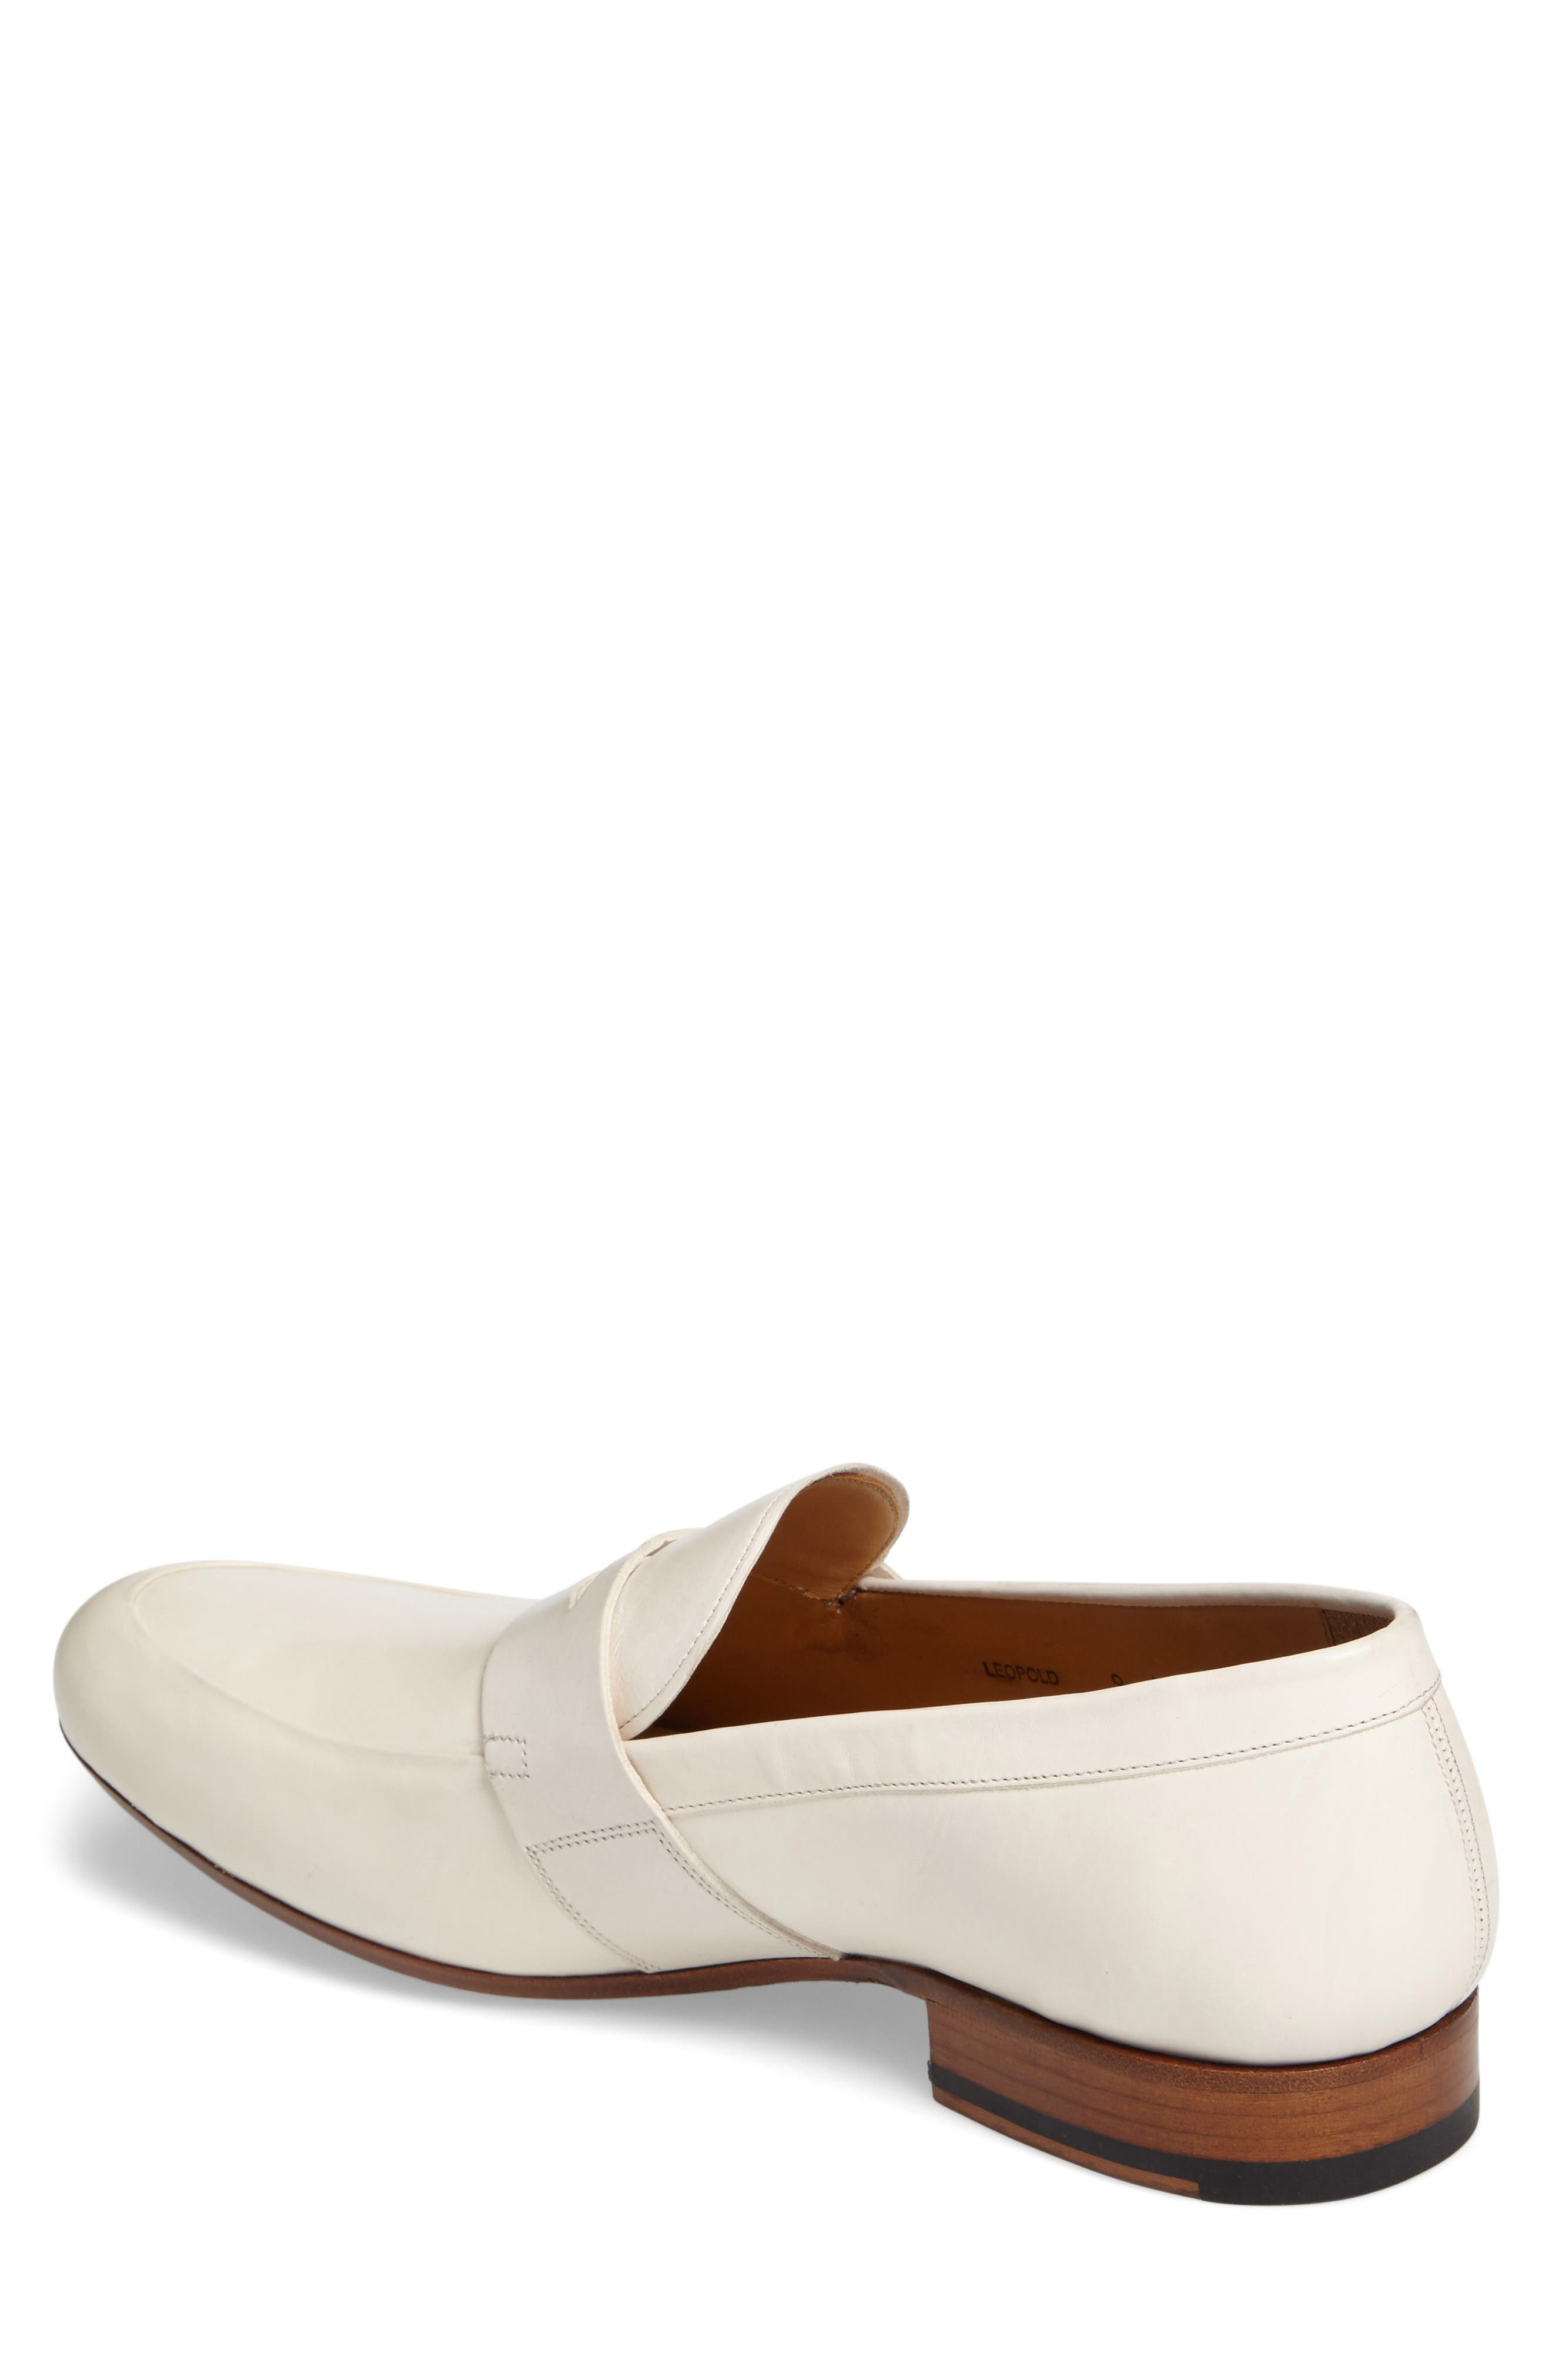 Leopold Penny Loafer,                             Alternate thumbnail 2, color,                             Bone Leather